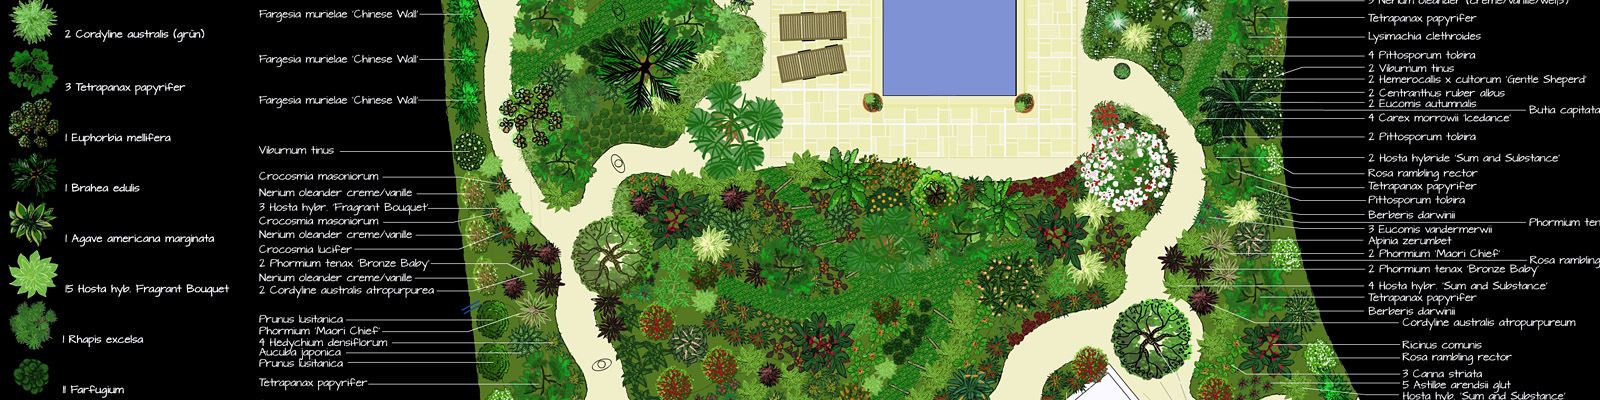 Green Parrot Gardens | Successful Planning | Exotic Garden Plan near St Tropez